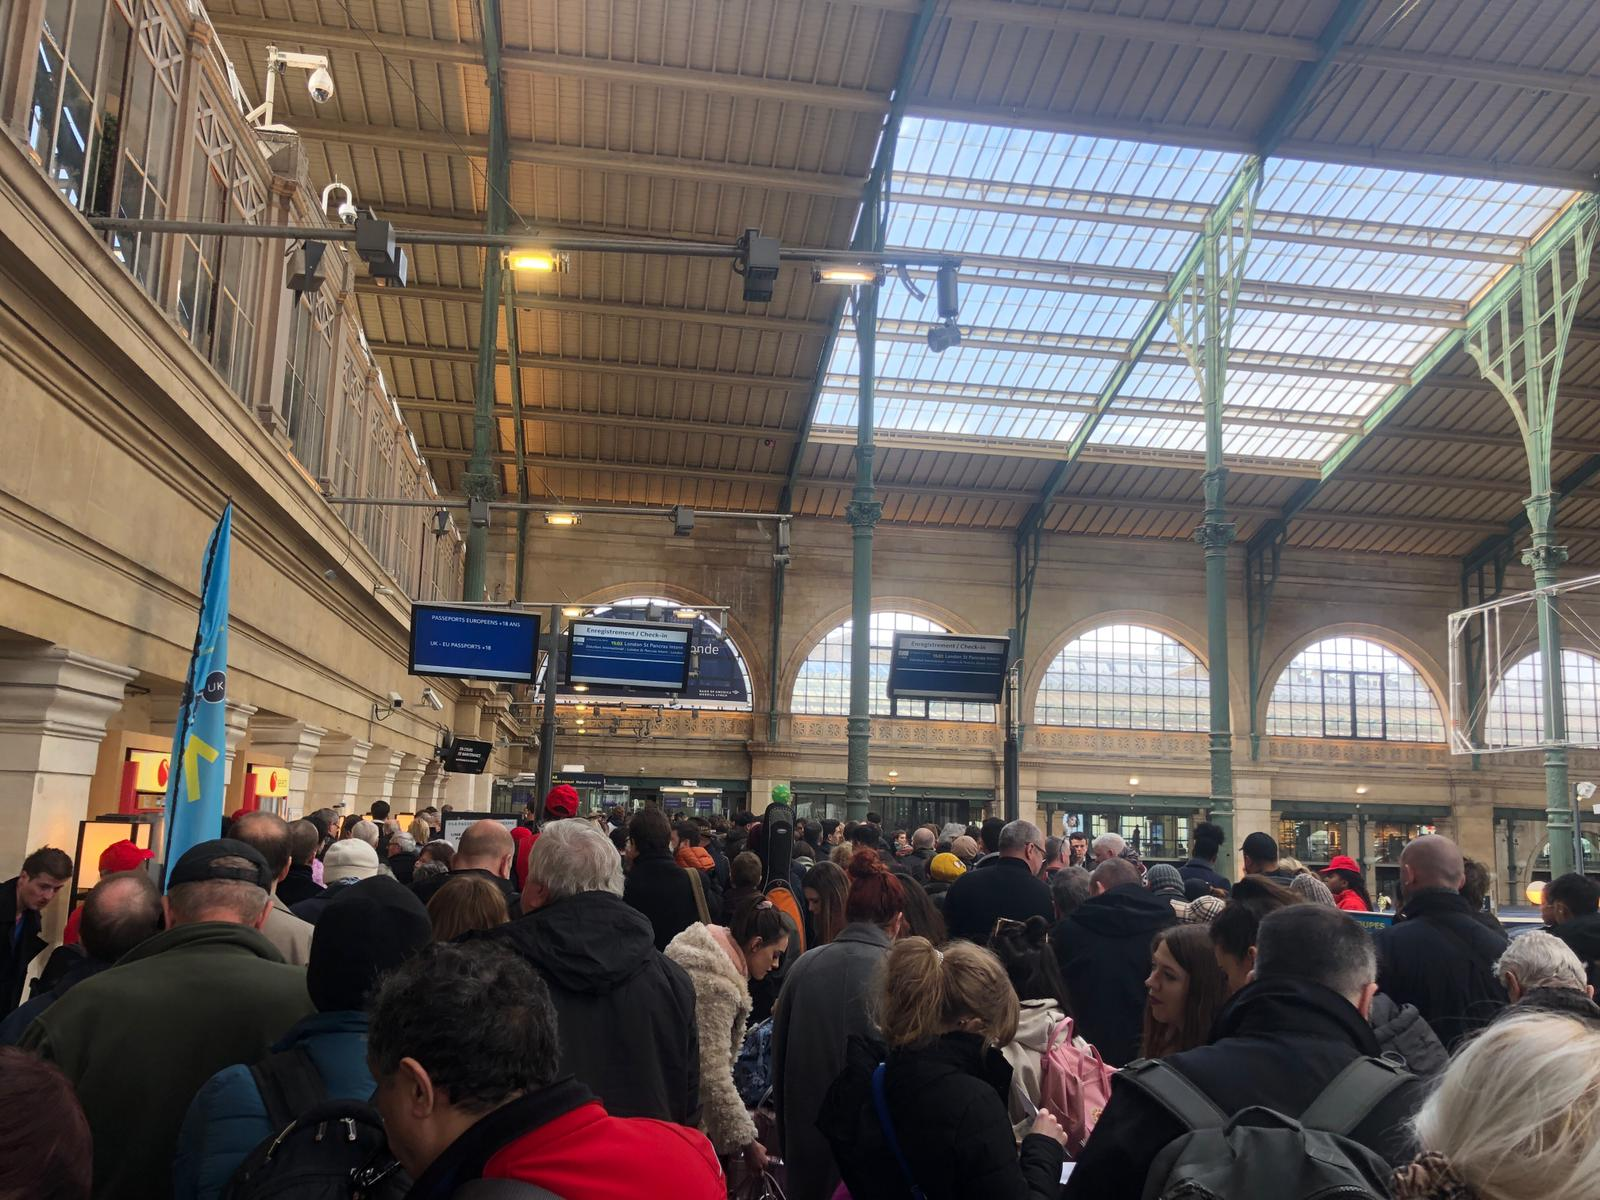 Brexit Hour Long Queues For Eurostar Passengers After Border Guards Stage No Deal Border Checks Trial In Paris The Independent The Independent